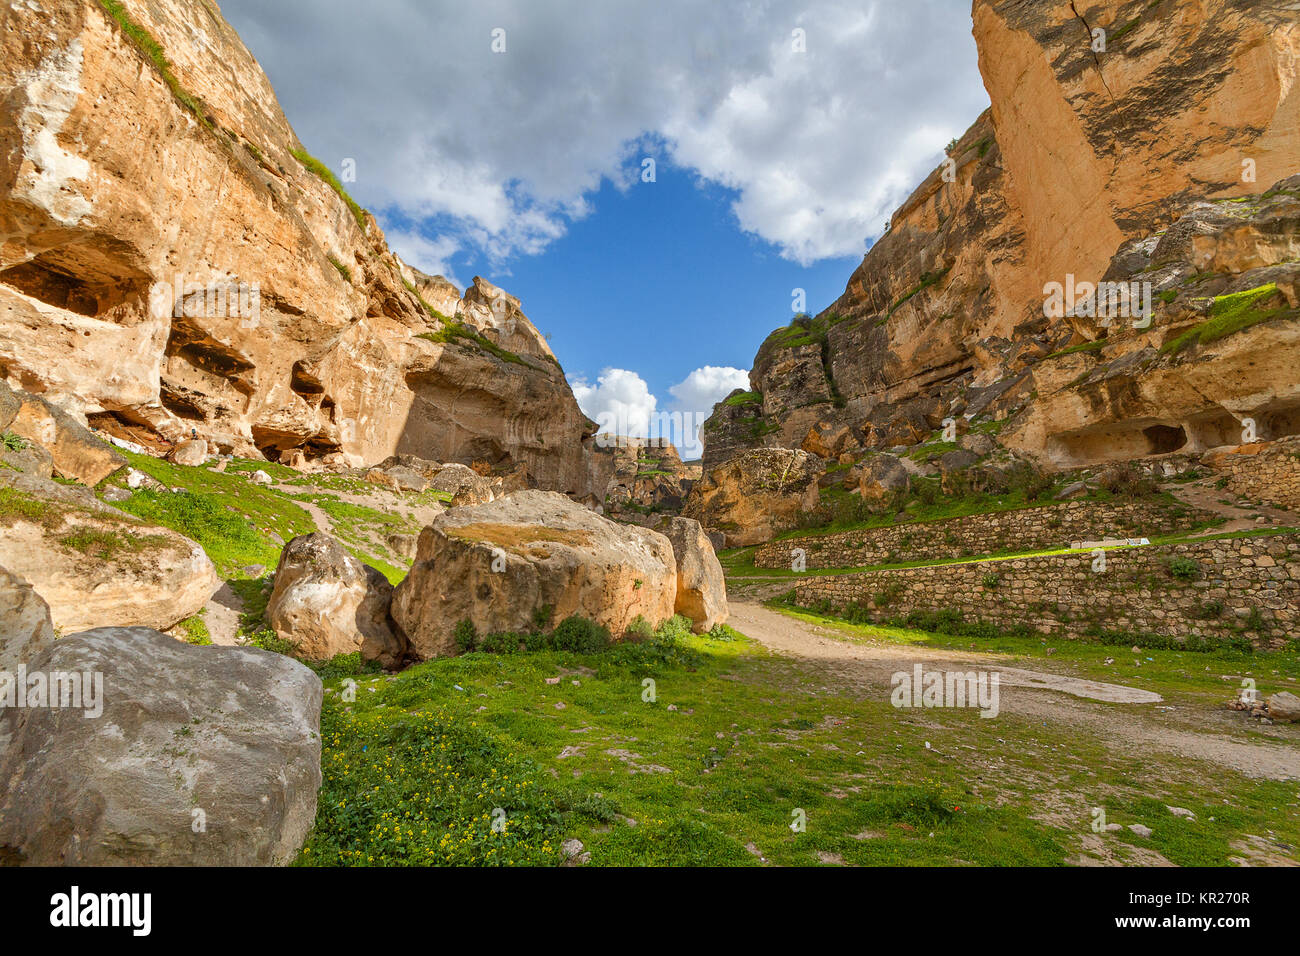 Ancient town of Hasankeyf in Turkey. The town will go under the water of the reservoir of a dam under construction Stock Photo